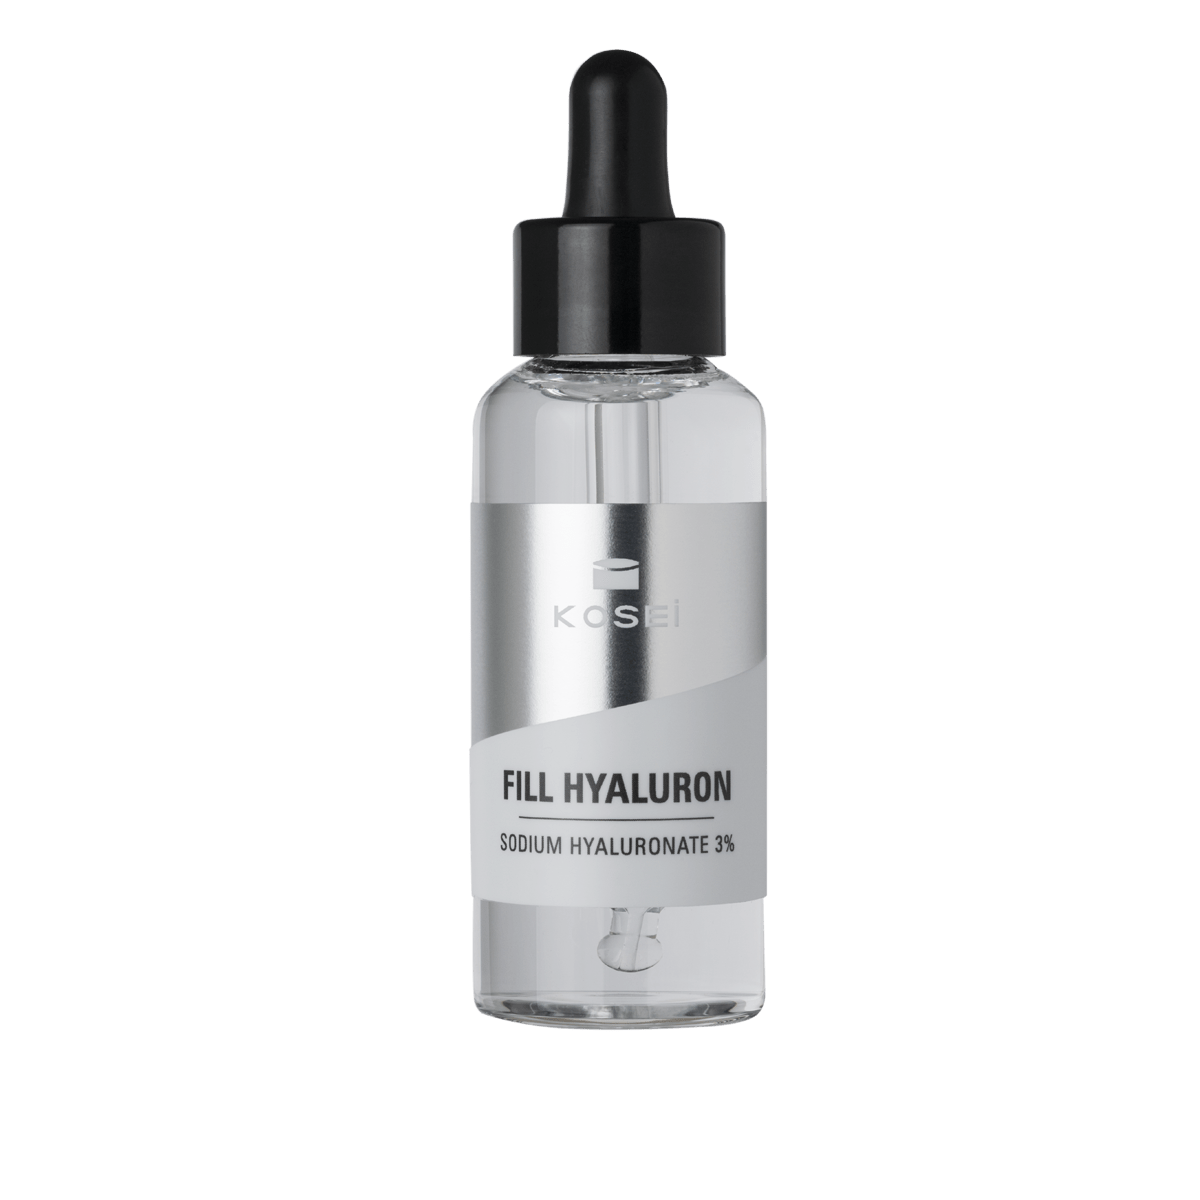 FILL HYALURON 3% 50ml